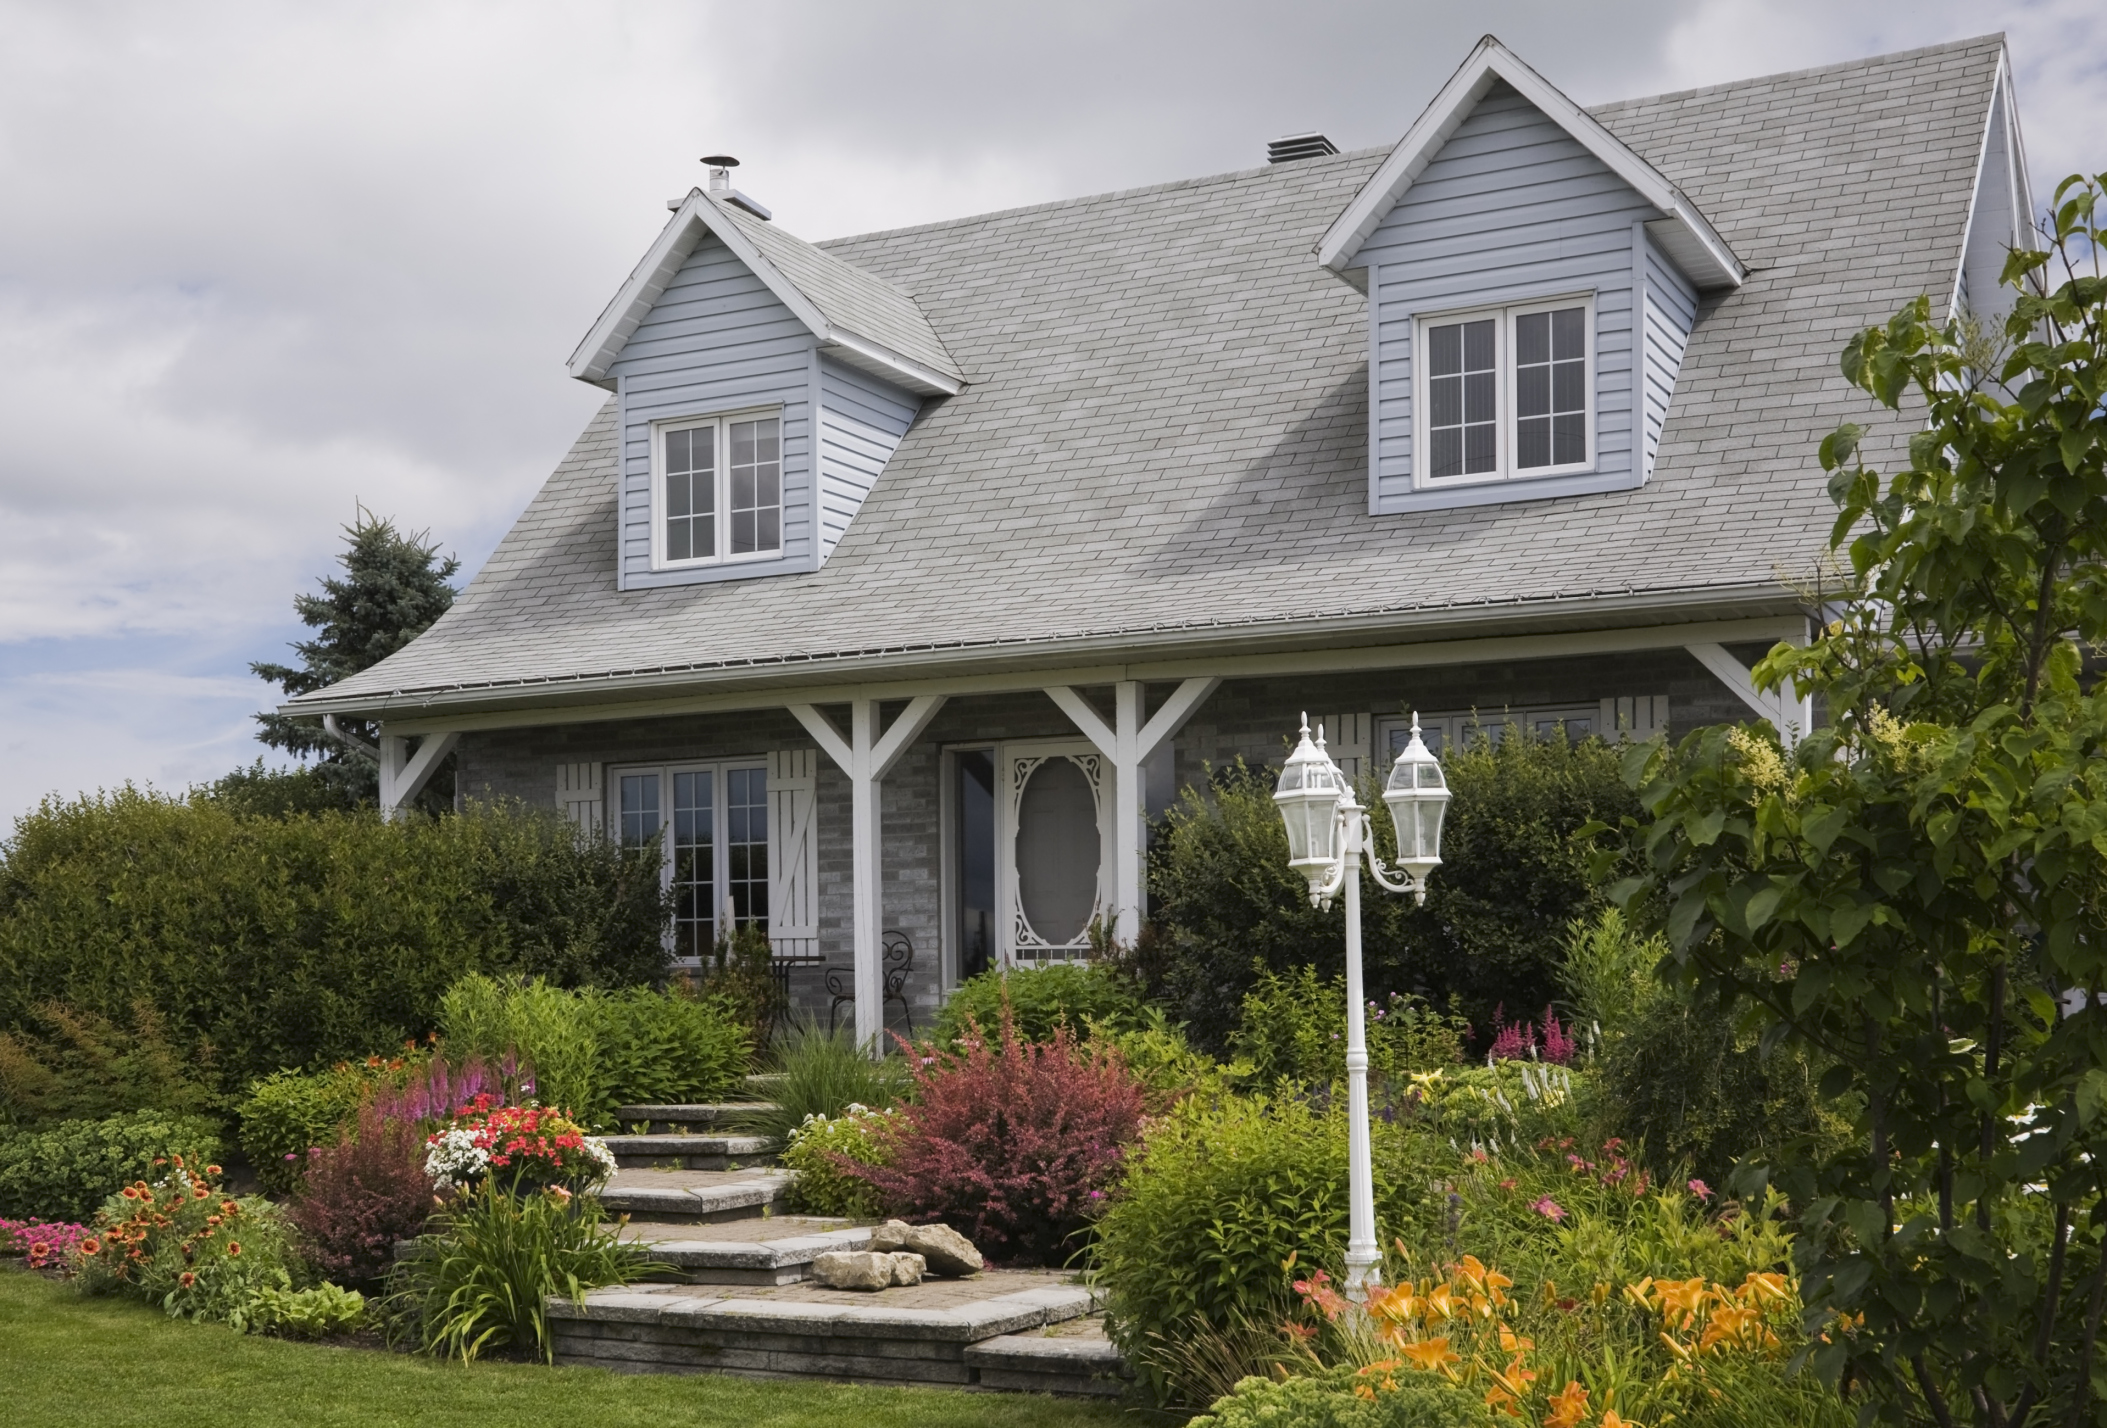 40 Front Yard and Backyard Landscaping Ideas - Landscaping ... on Backyard House Ideas id=49660